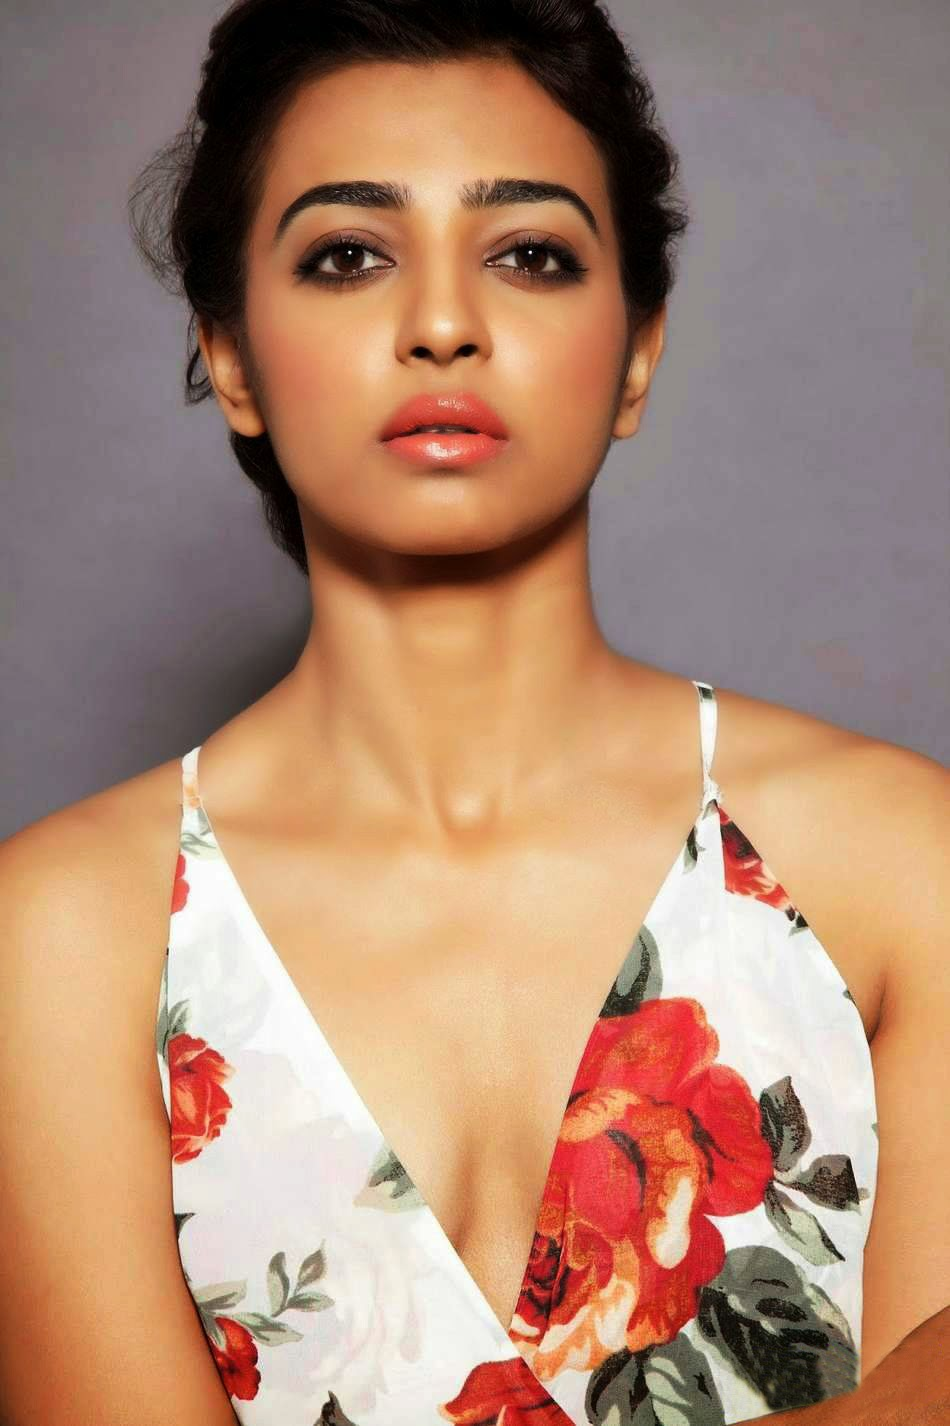 radhika-apte-nude-wallpapers